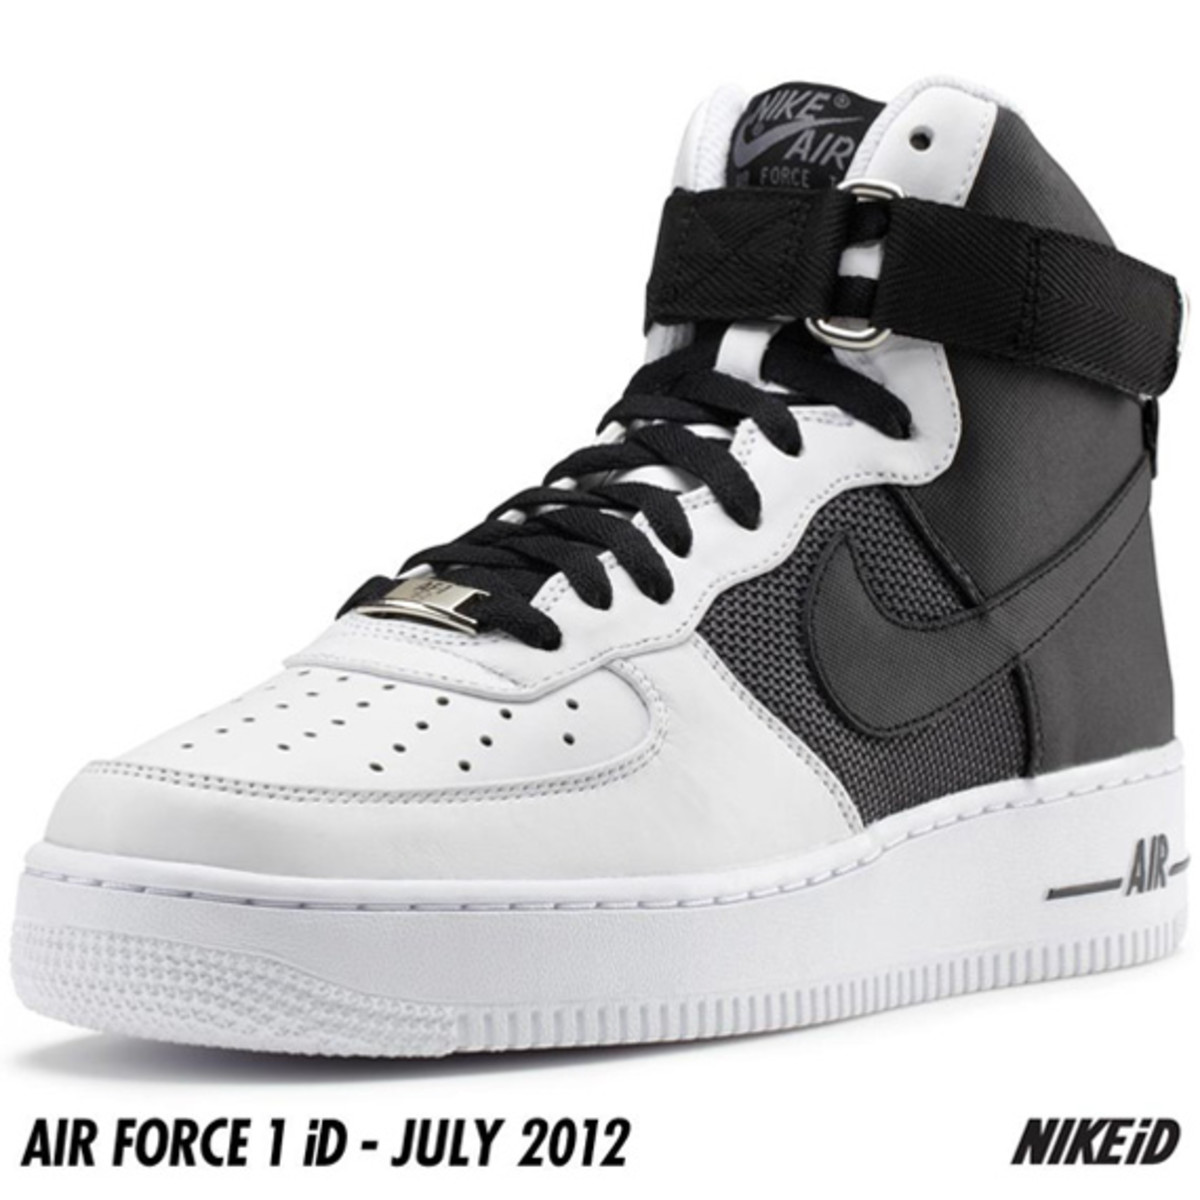 nikeid-air-force-1-id-tactical-mesh-grip-leather-design-july-2012-08